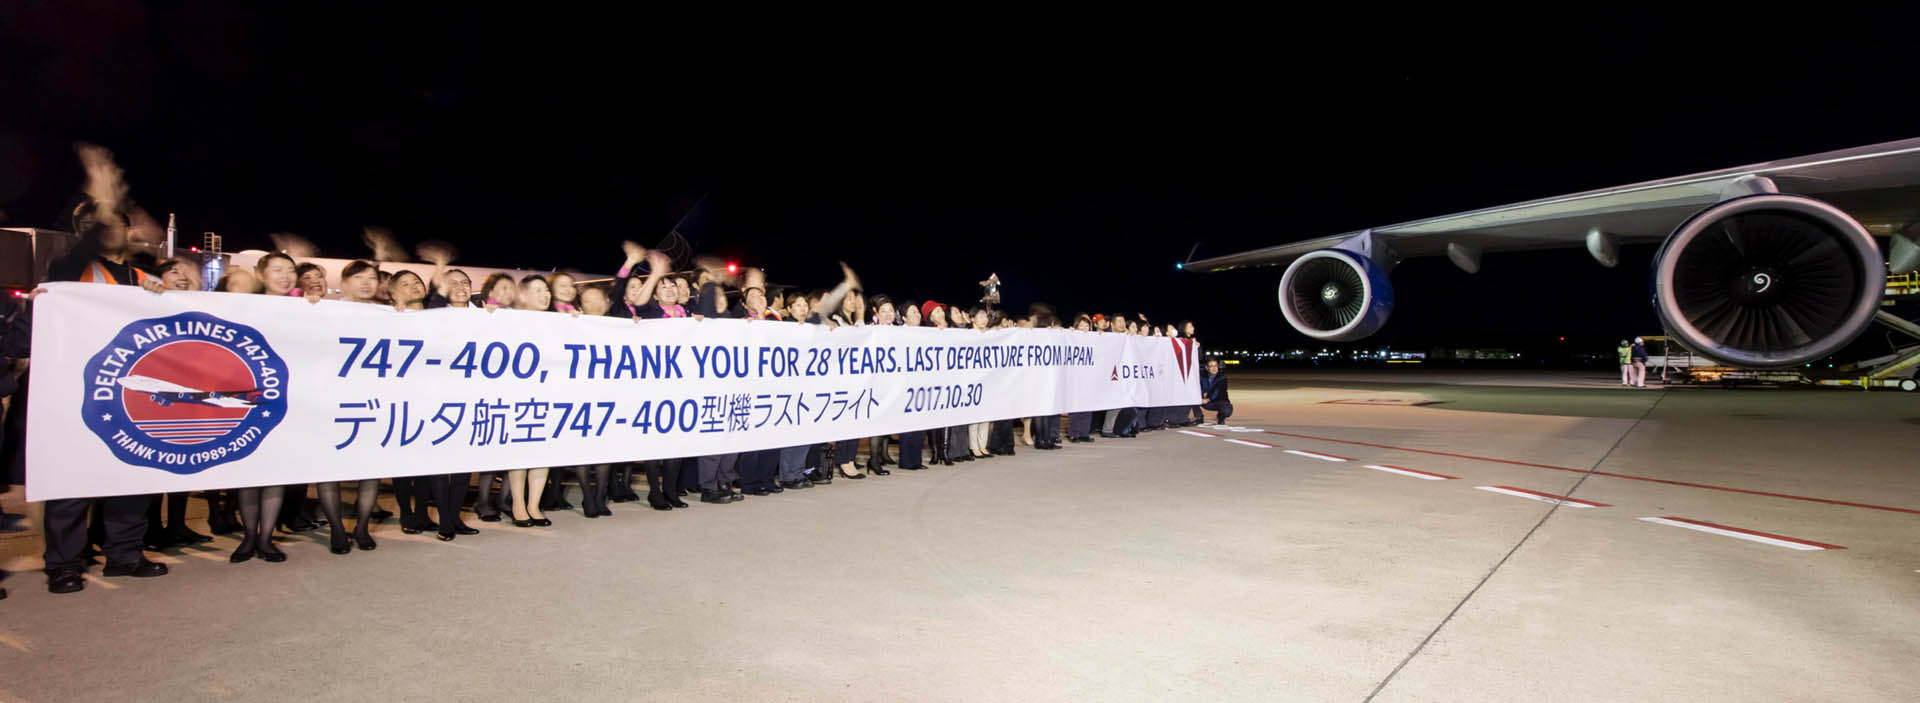 "Delta Air Lines 747 Said ""Sayonara"" to Japan as It Operated Its Last Flight Out of Tokyo Yesterday"